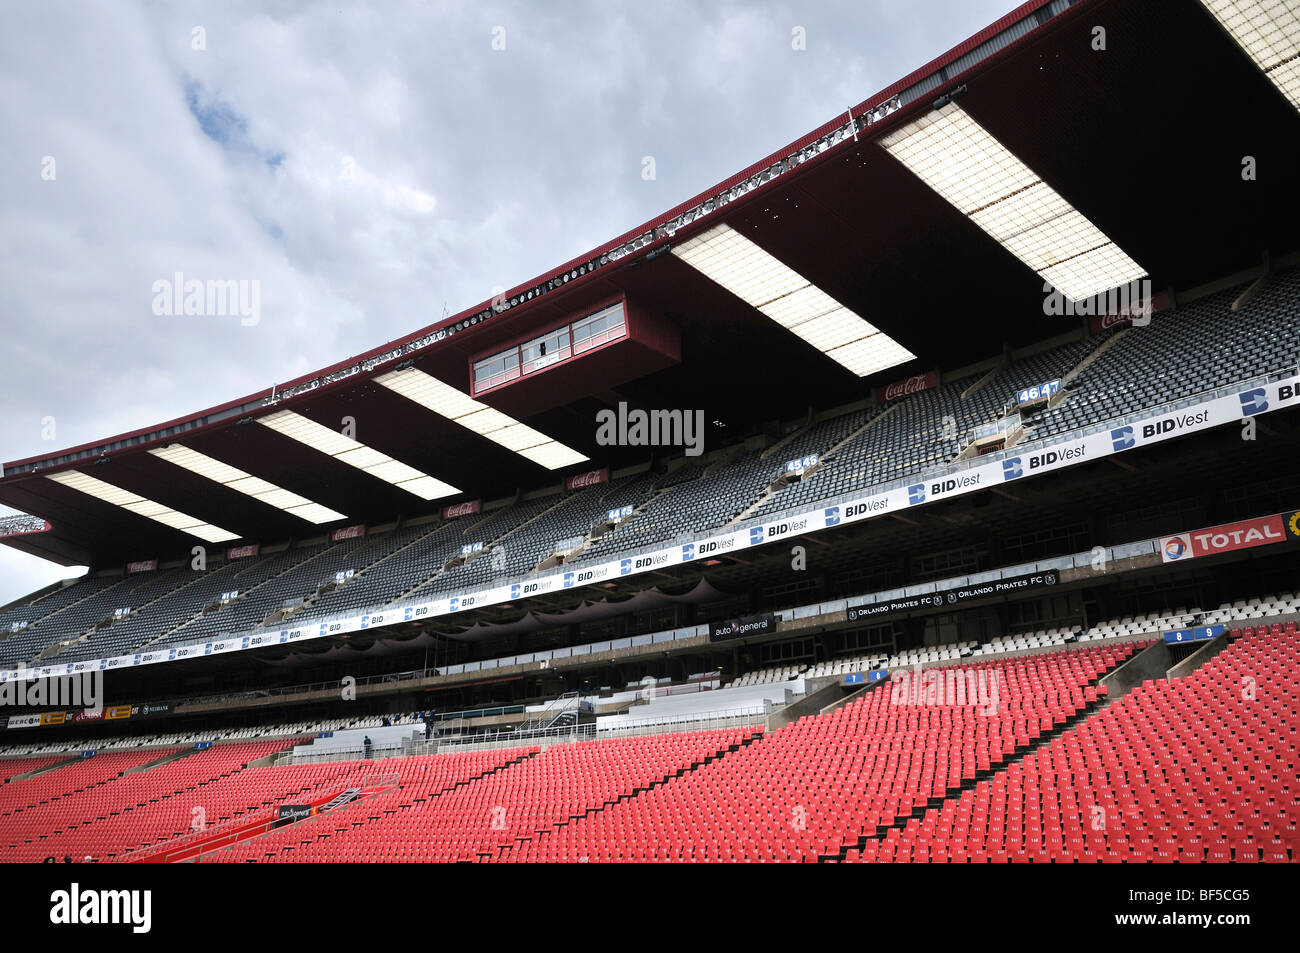 2010 FIFA World Cup, empty stand at the Ellis Park or Coca-Cola Park Stadium in Johannesburg, South Africa, Africa - Stock Image